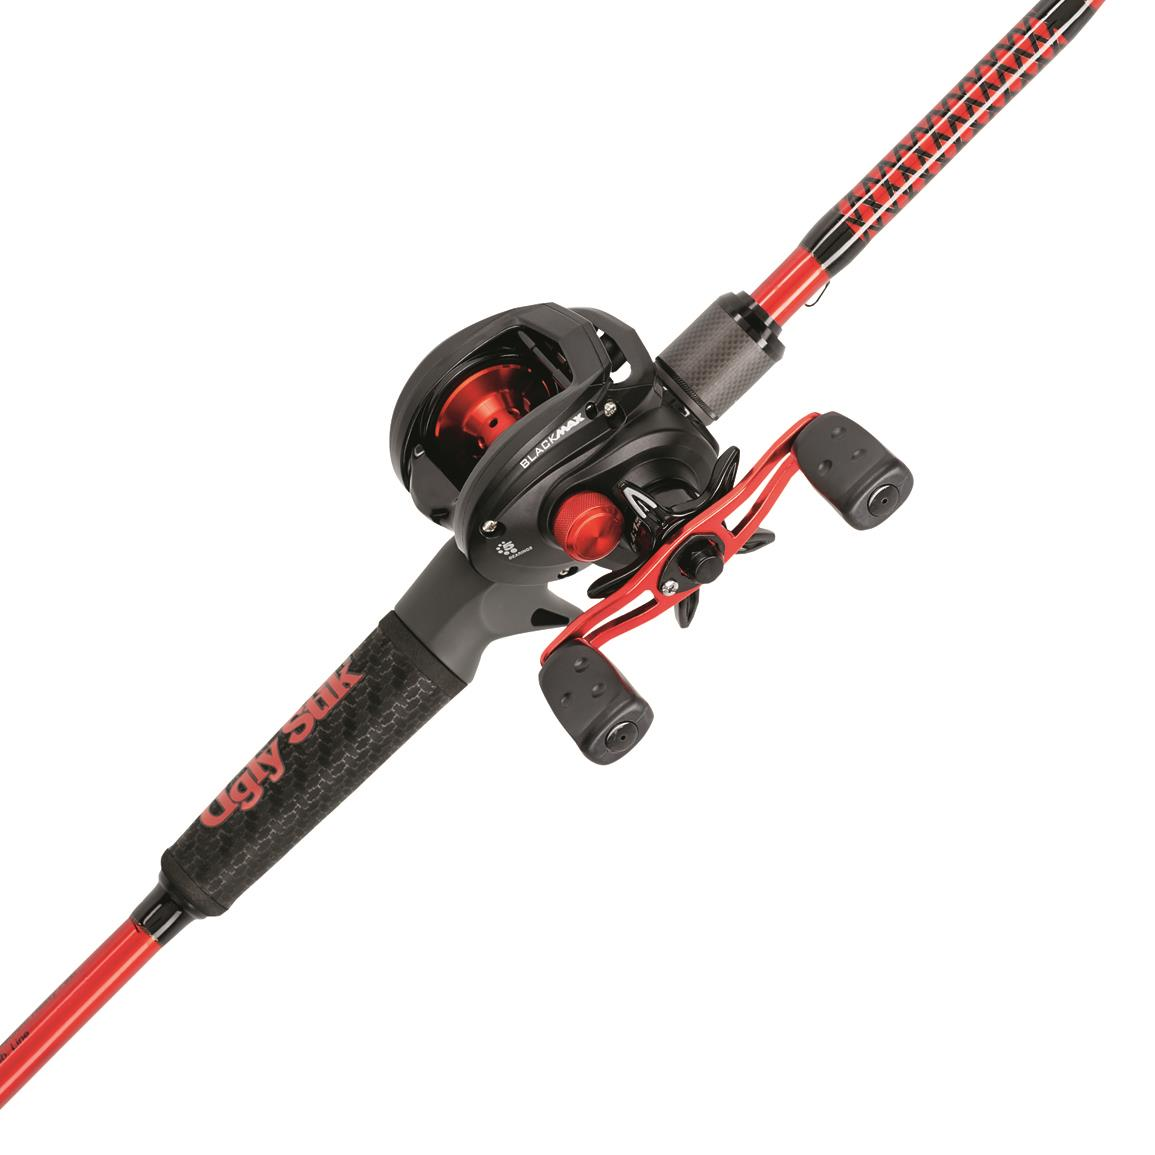 Ugly Stick® Carbon Series Baitcasting Rod and Reel Combo